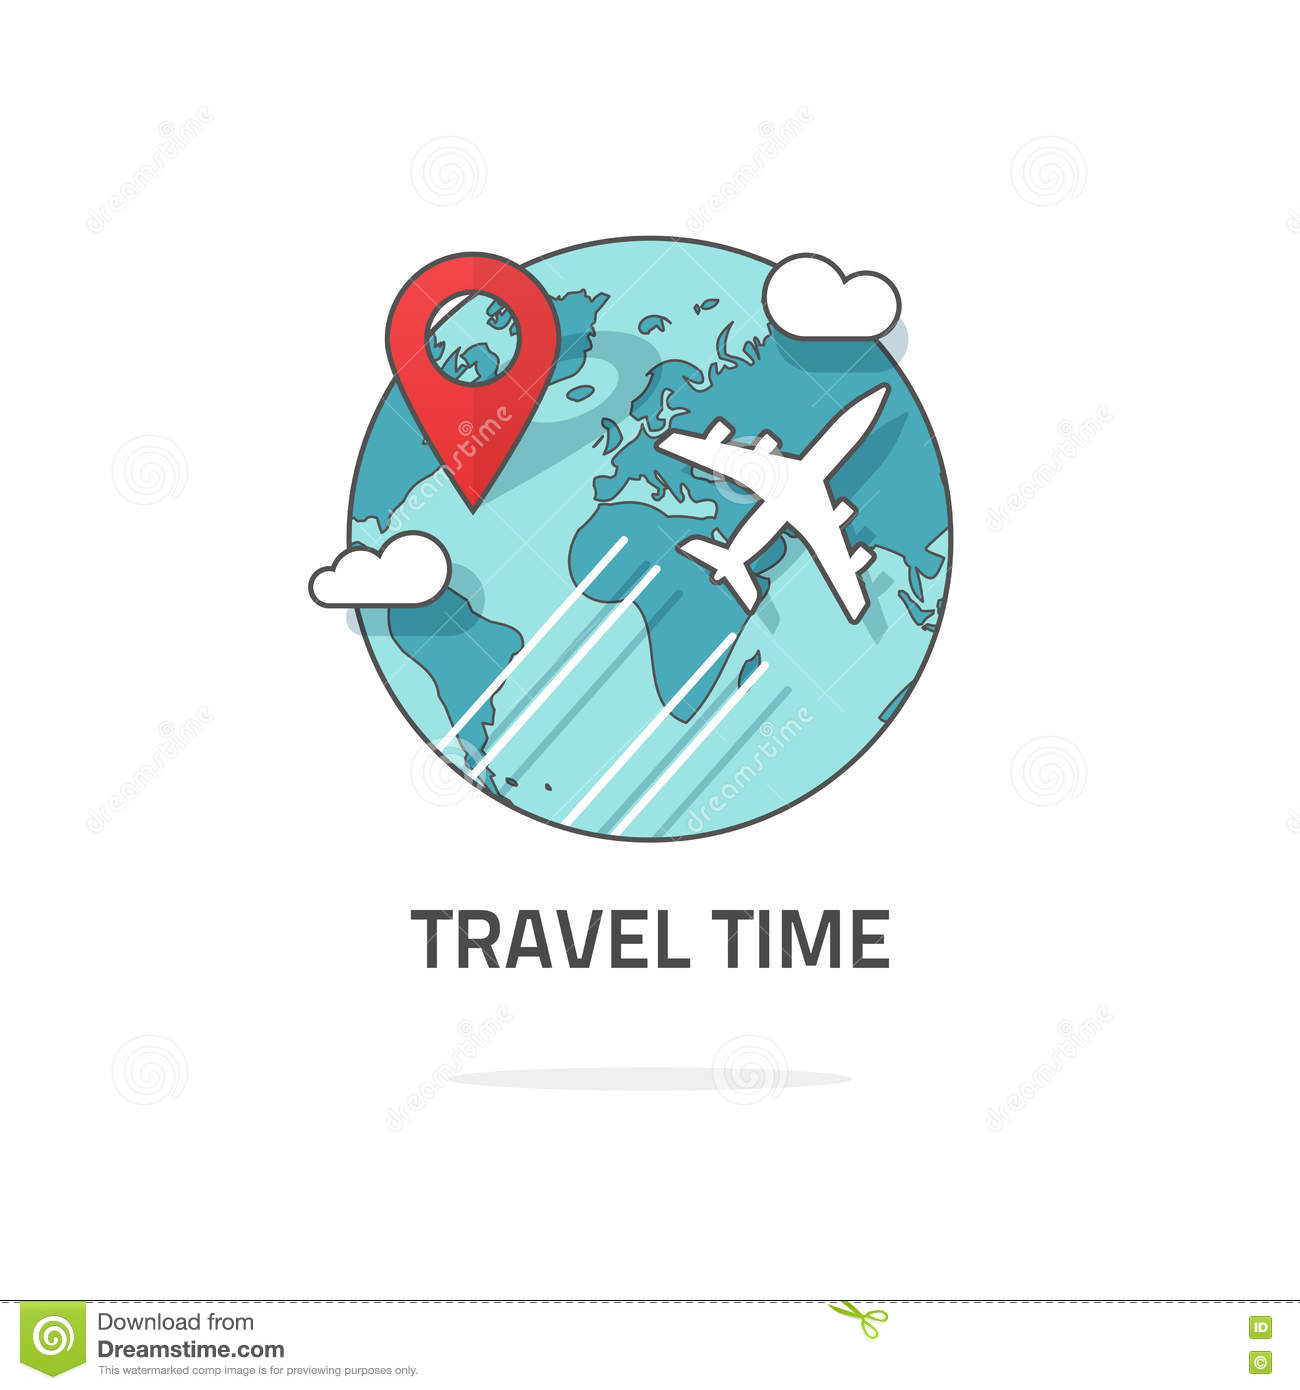 Download Travelling By Plane Concept Travel And World Trip Logo Journey Stock Vector